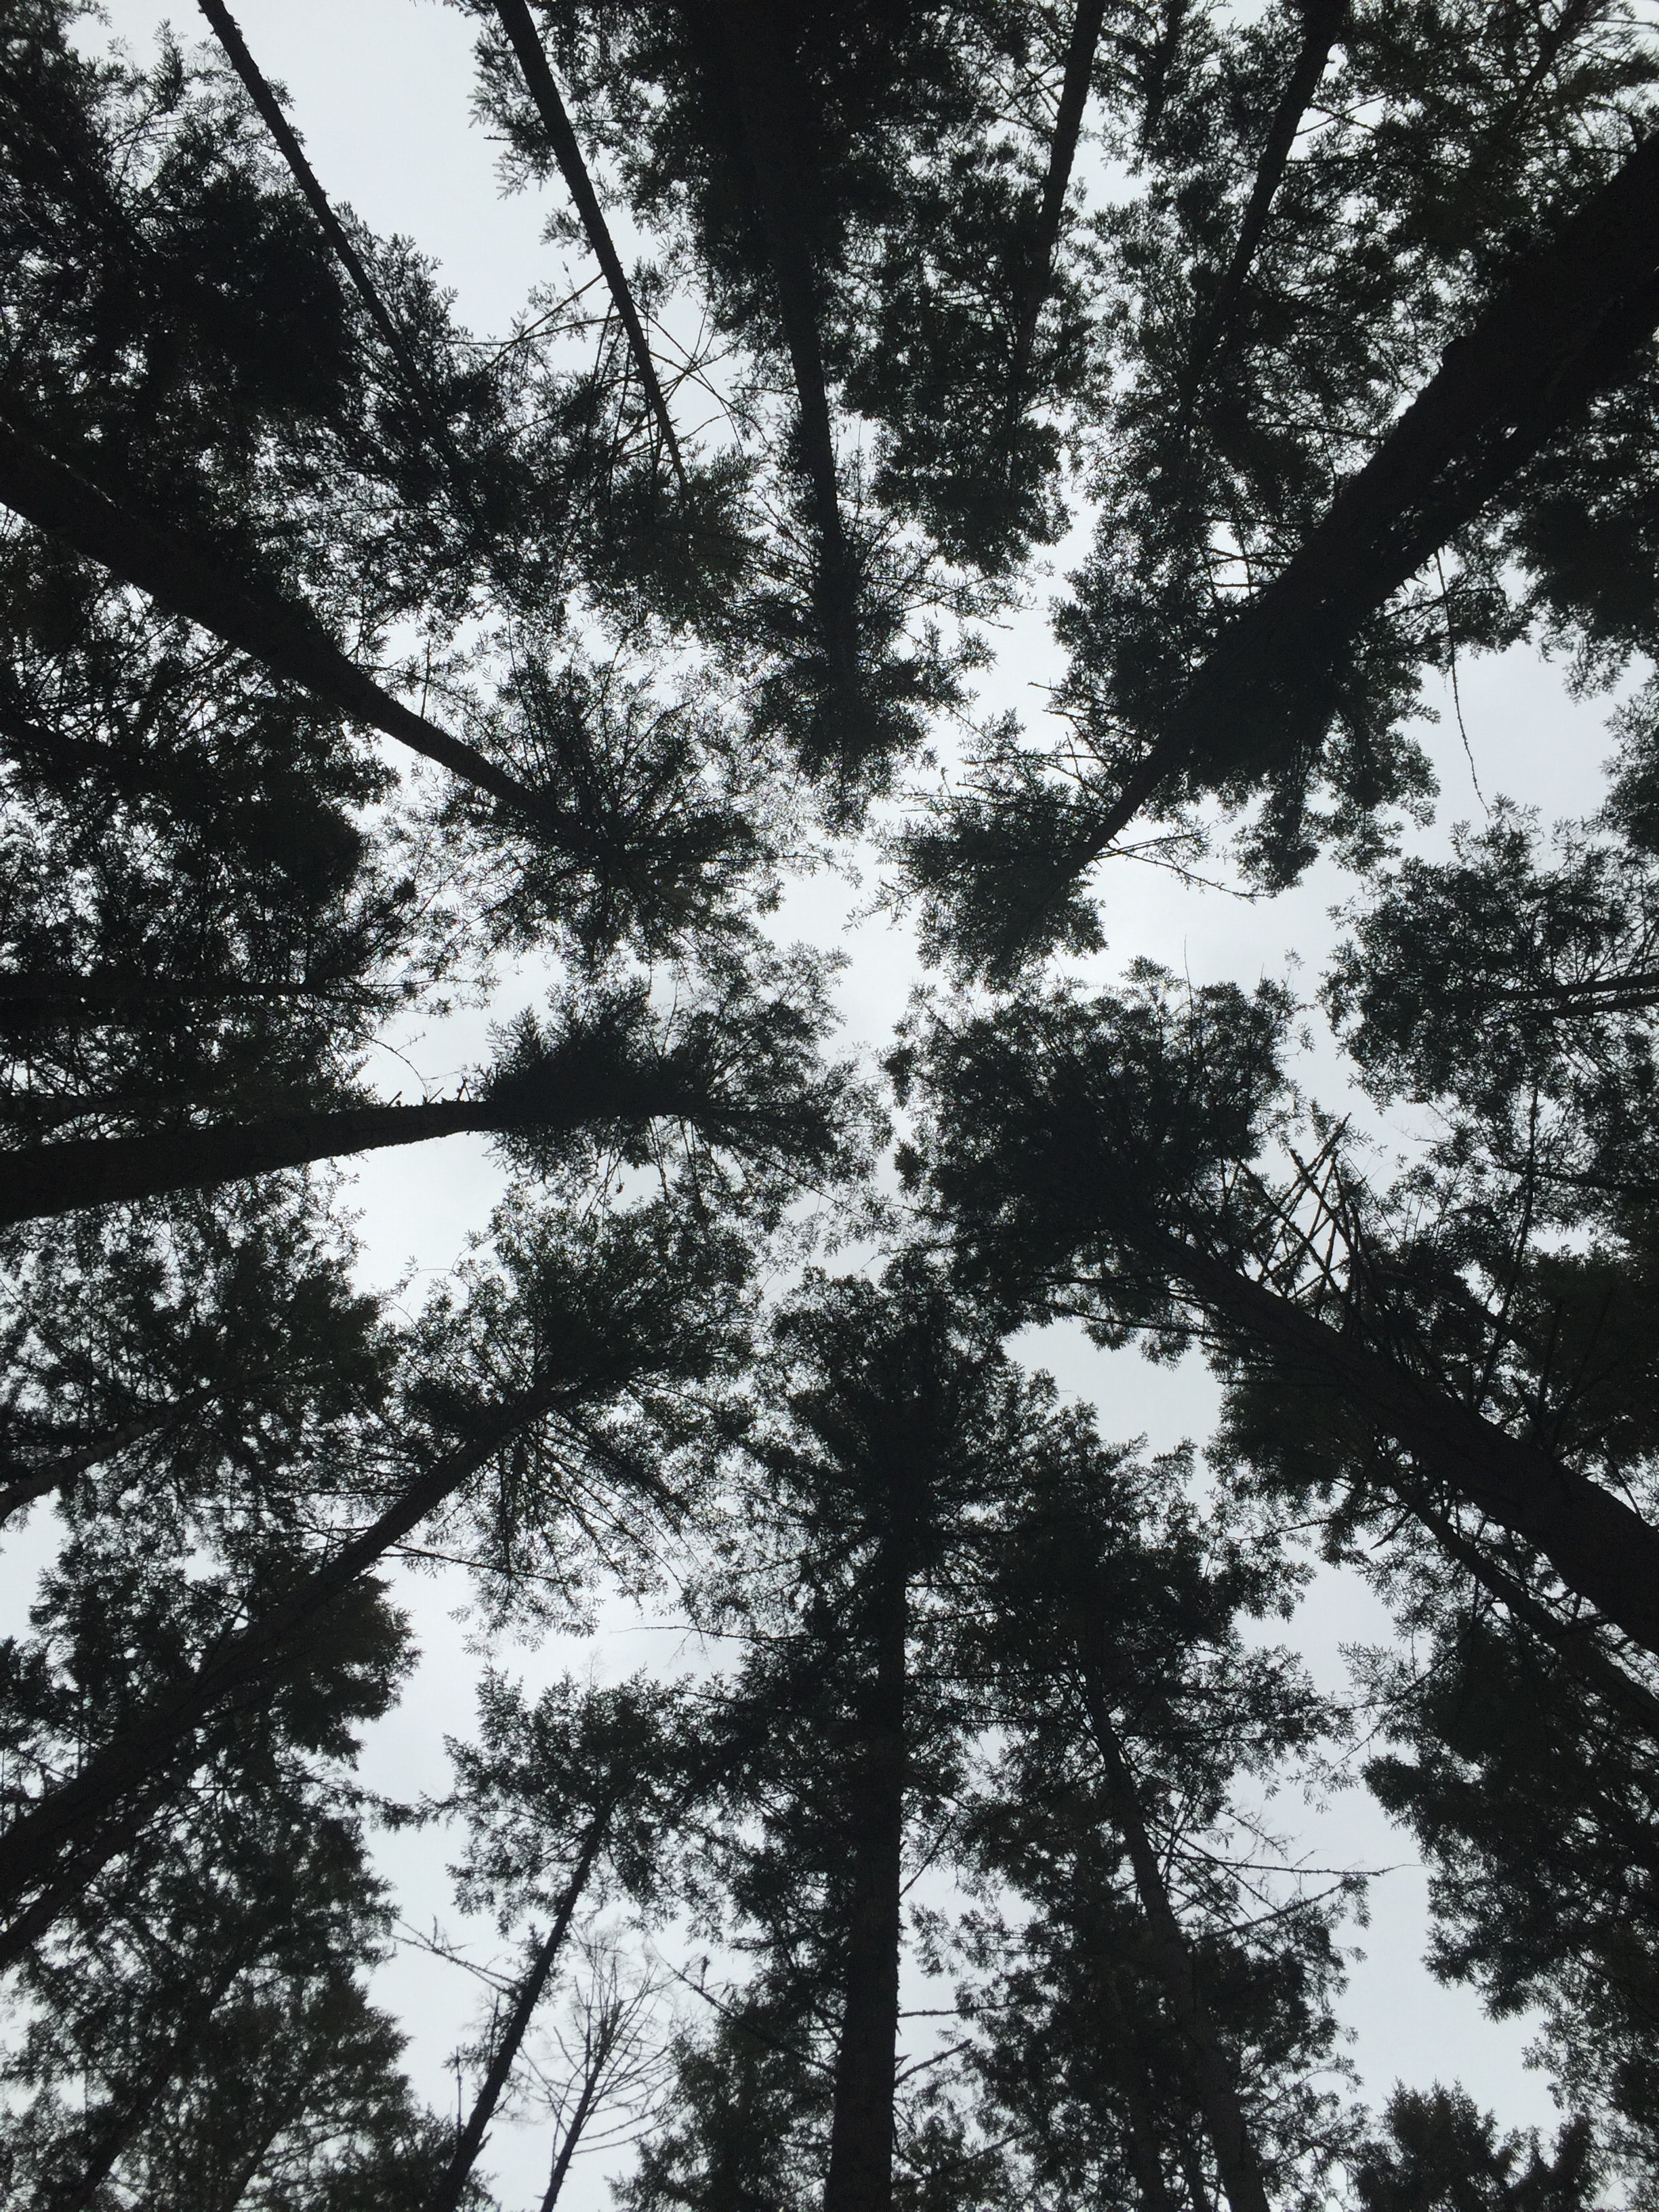 low-angle photography of silhouette of trees under gray sky at daytime